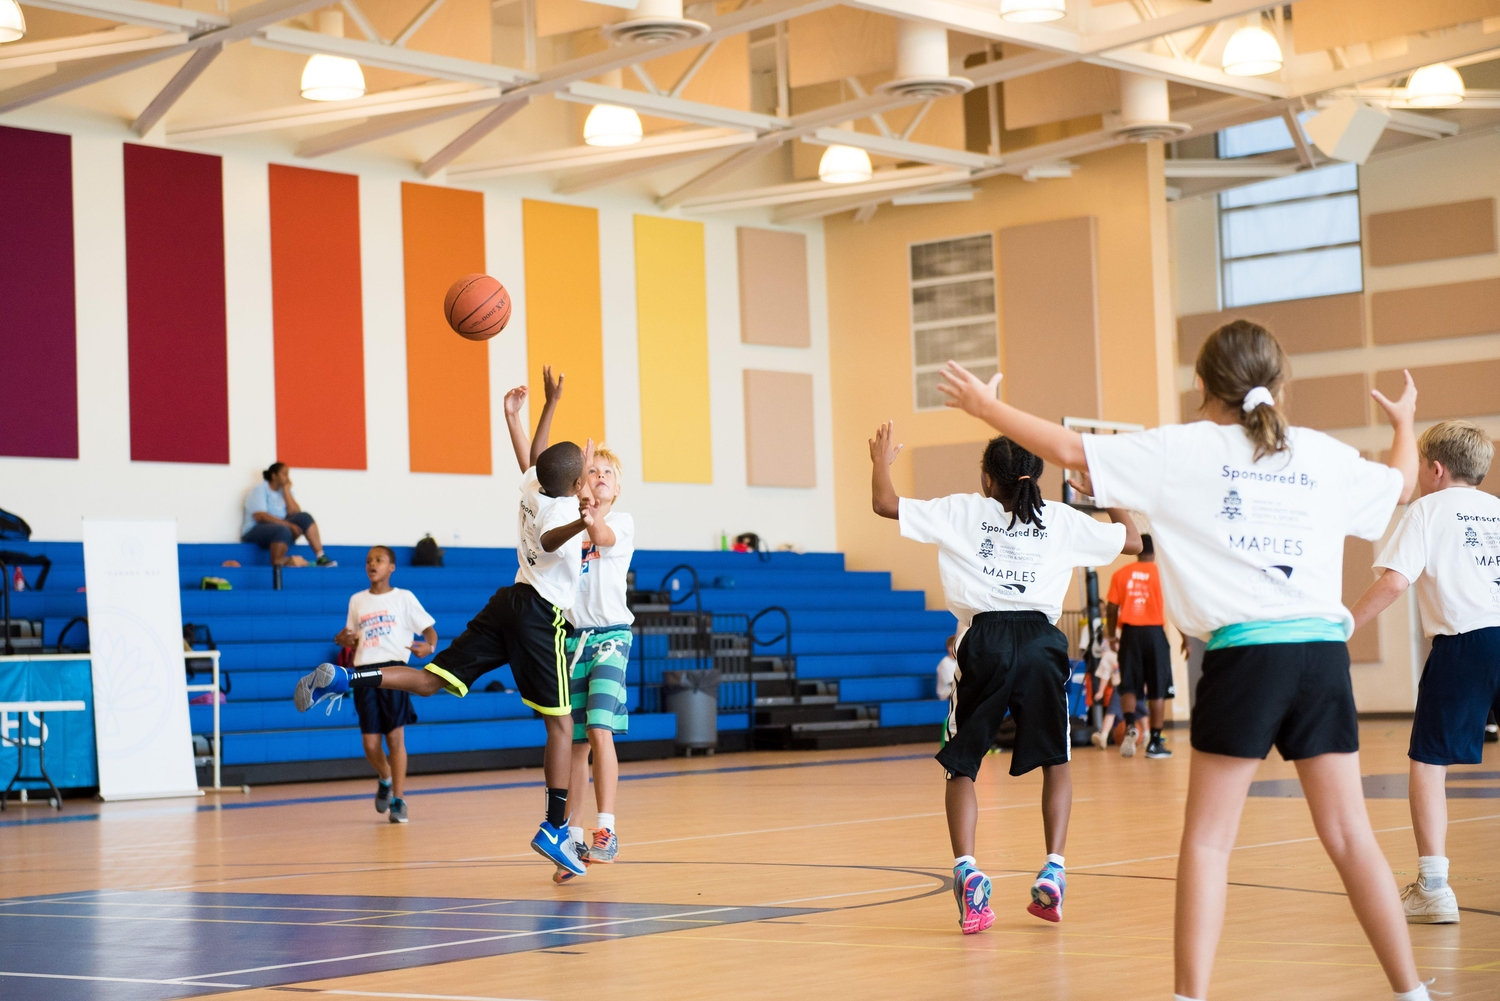 Kids playing basketball at an indoor sports facility